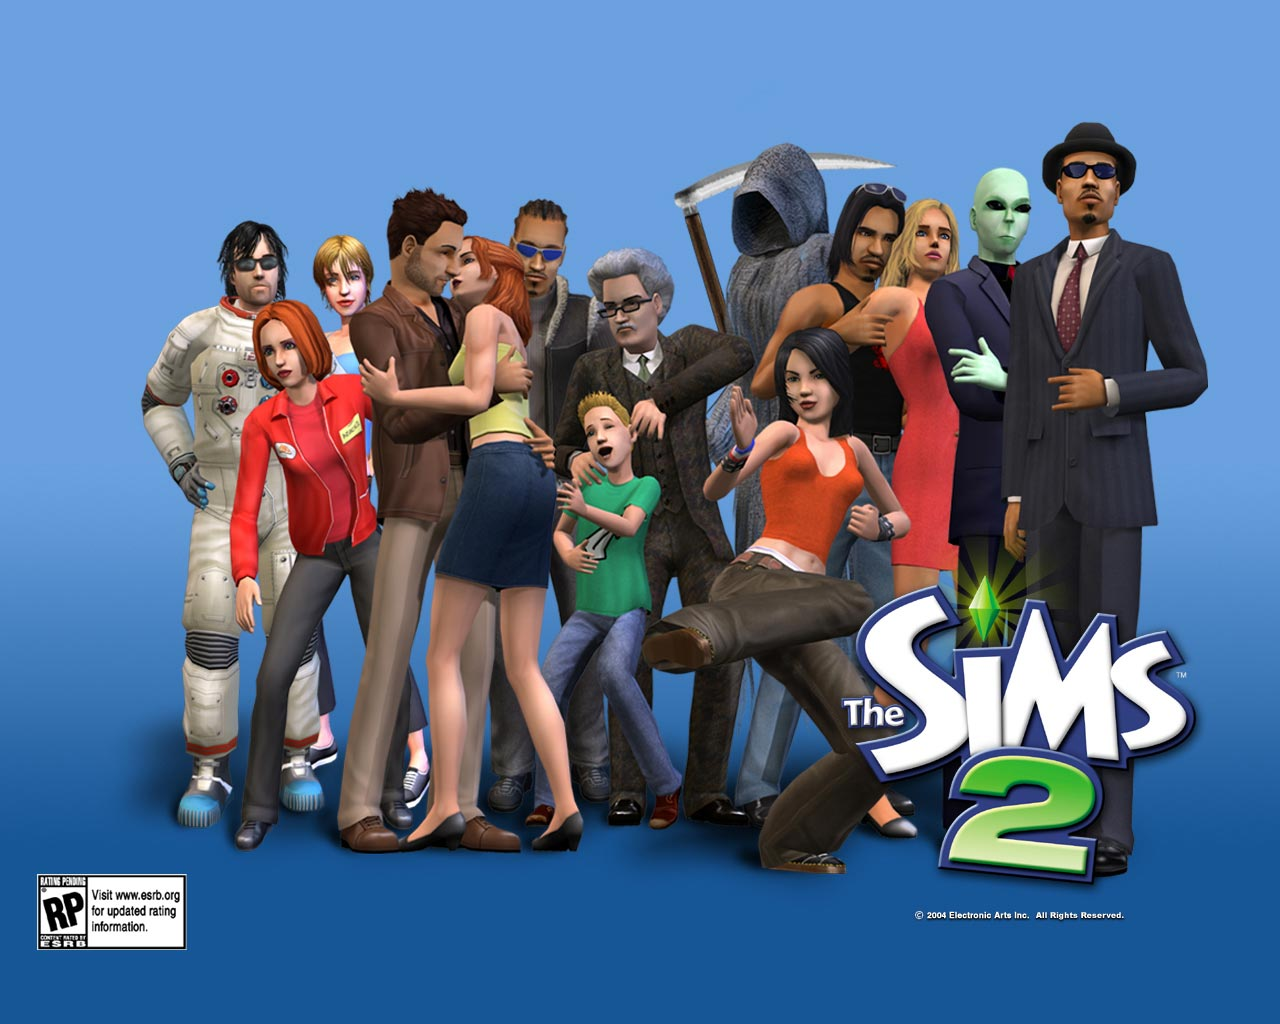 The sims 2 game online for free no download free casino slots downloads games